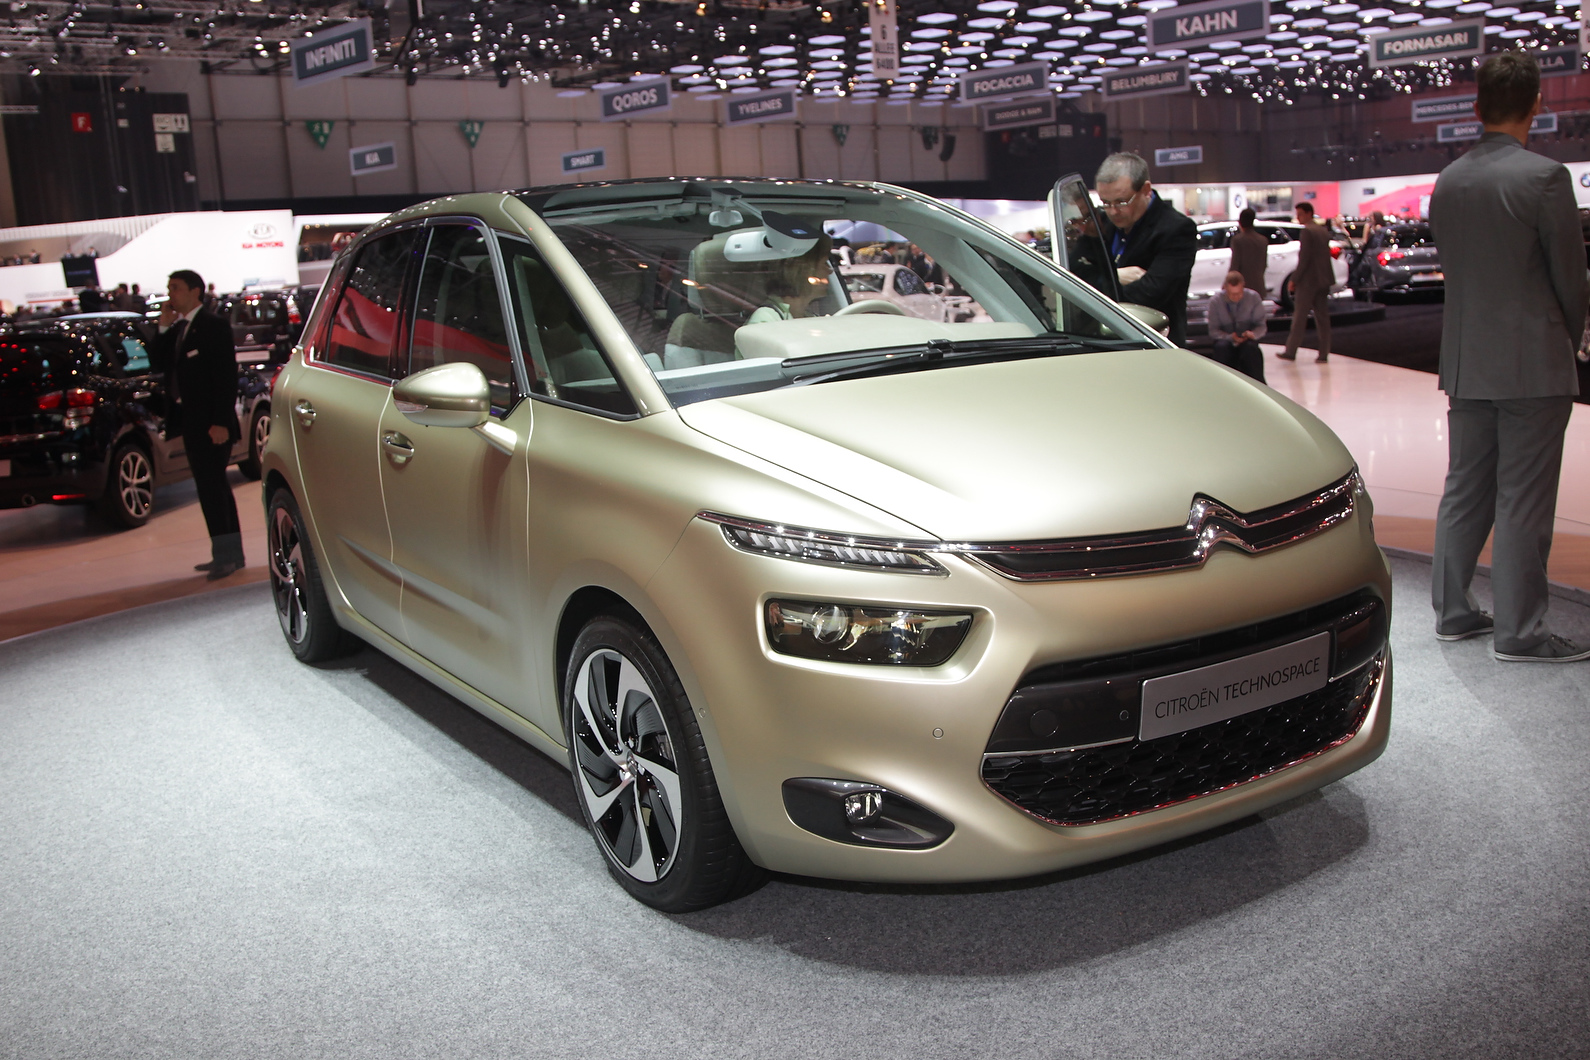 Next C4 Picasso will use Technospace styling cues and be lighter than current car.